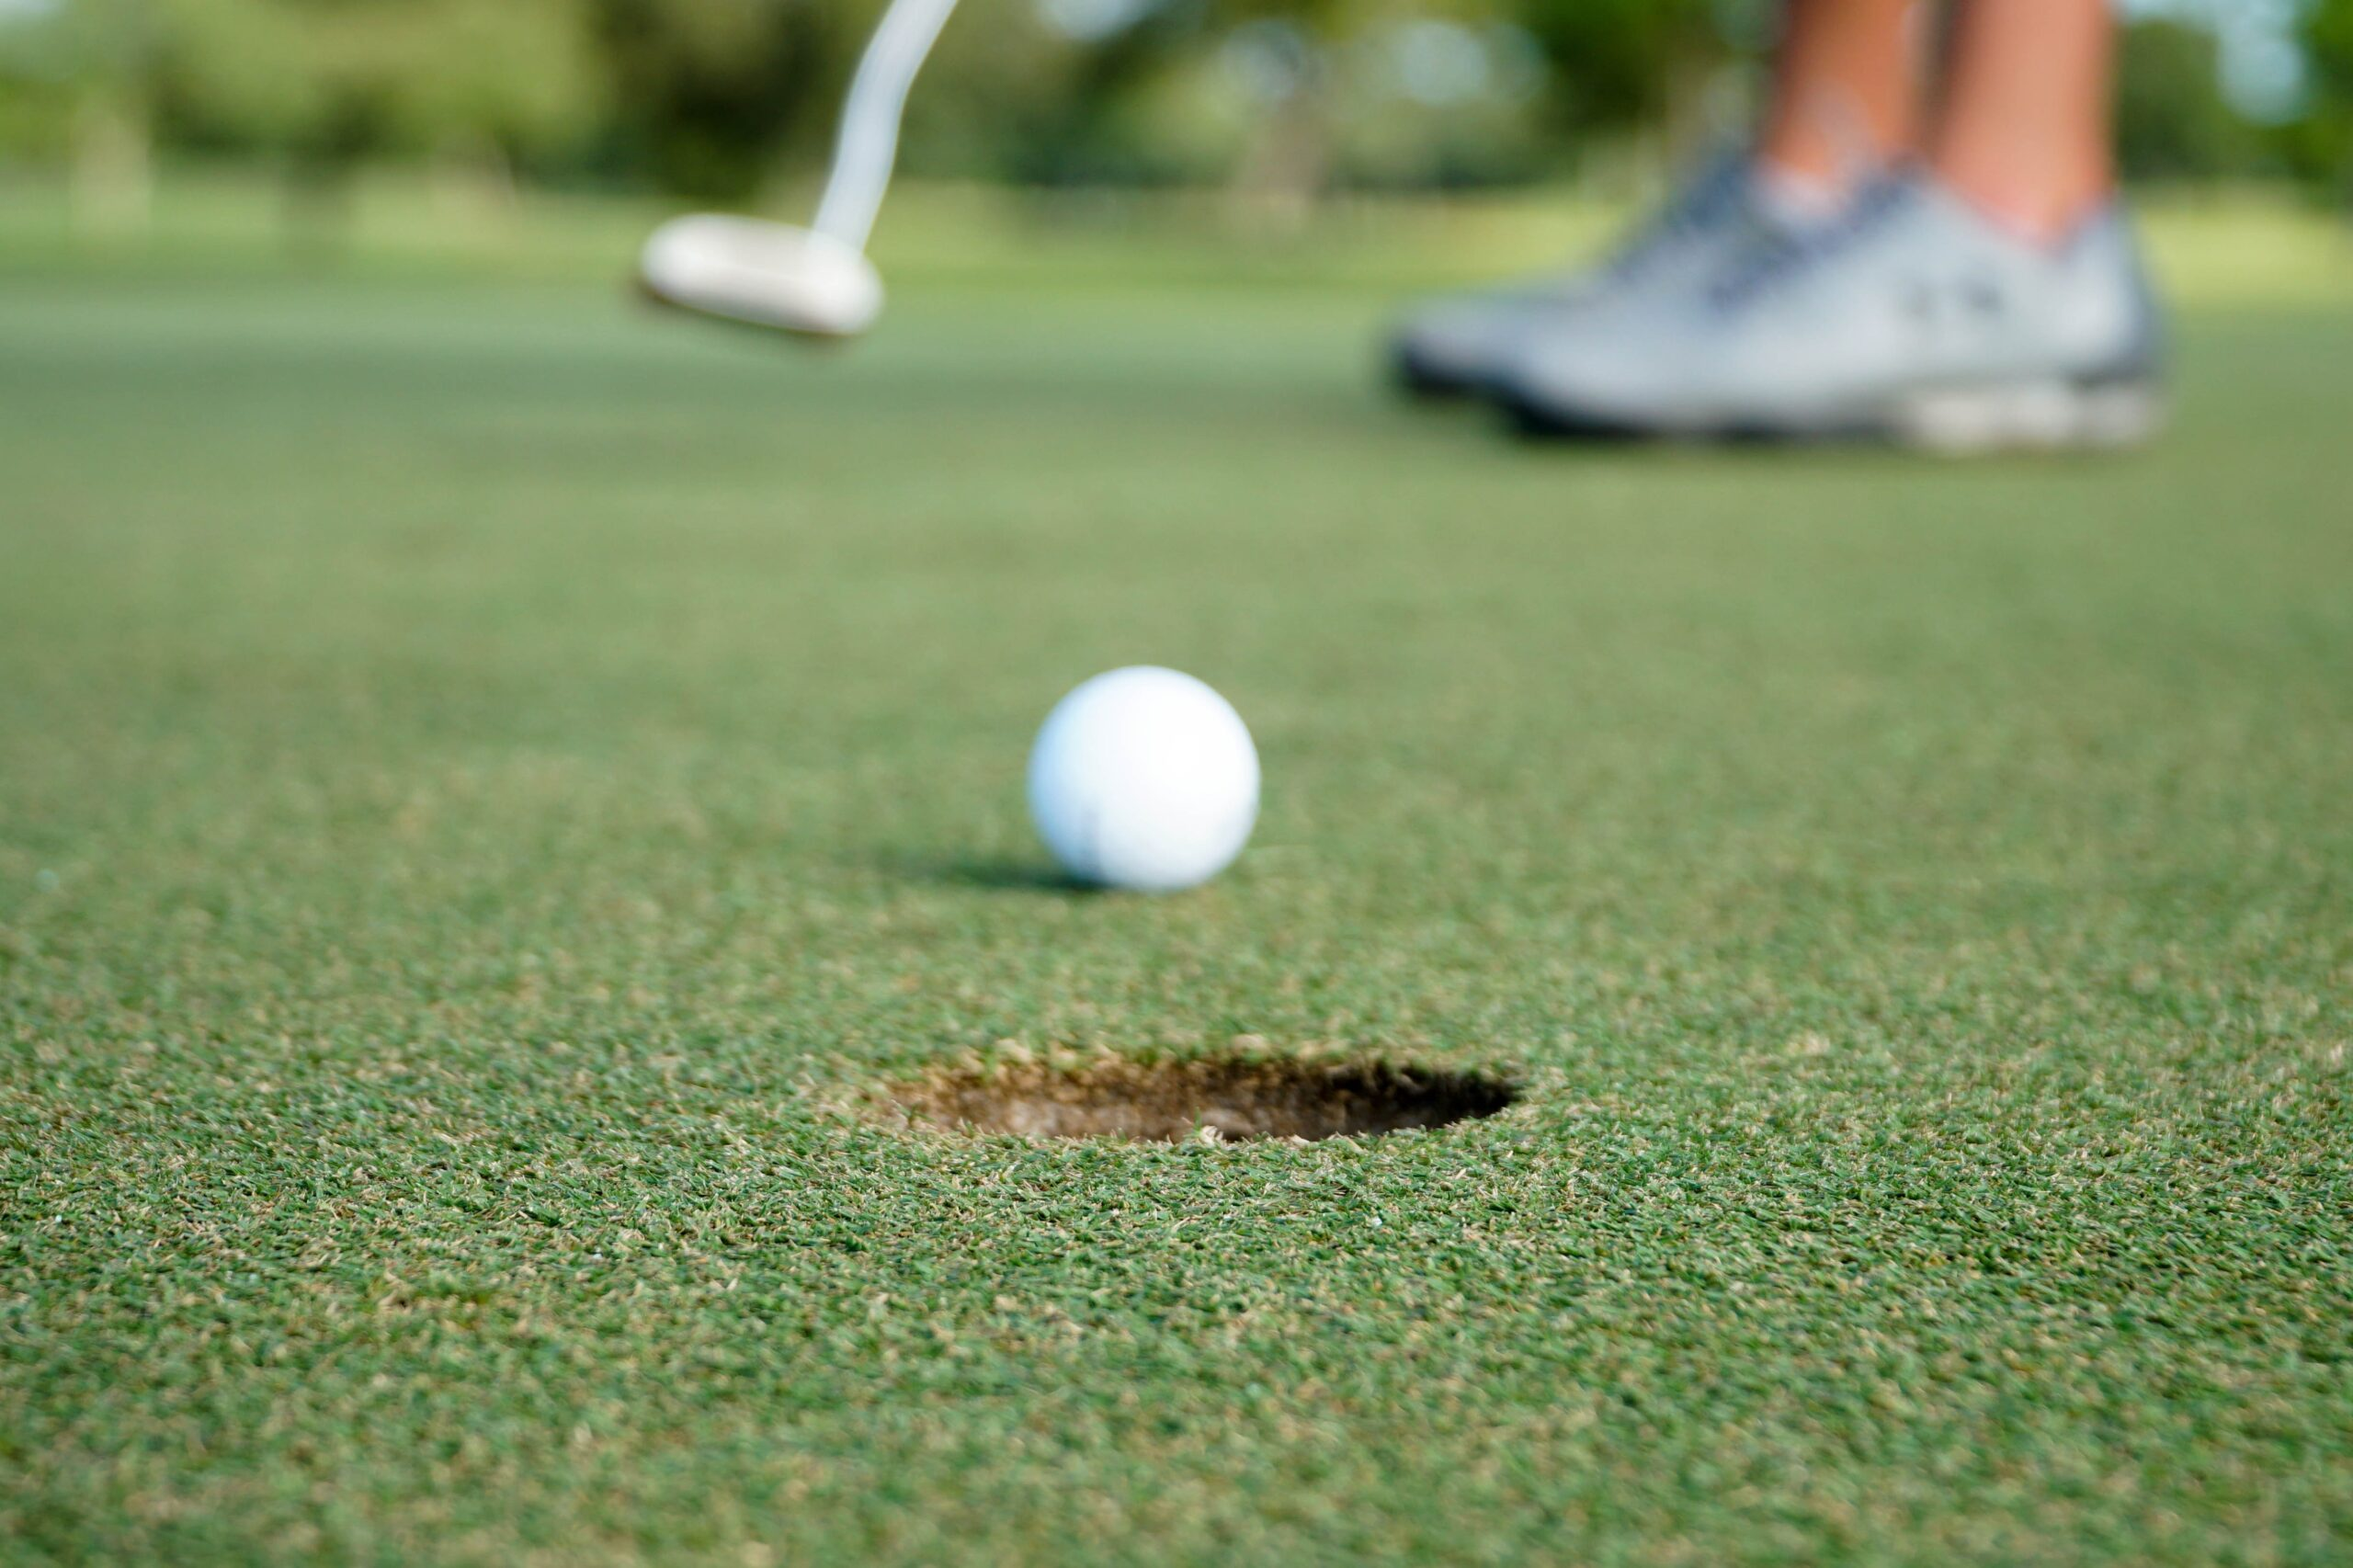 What's your favorite putting training aid?